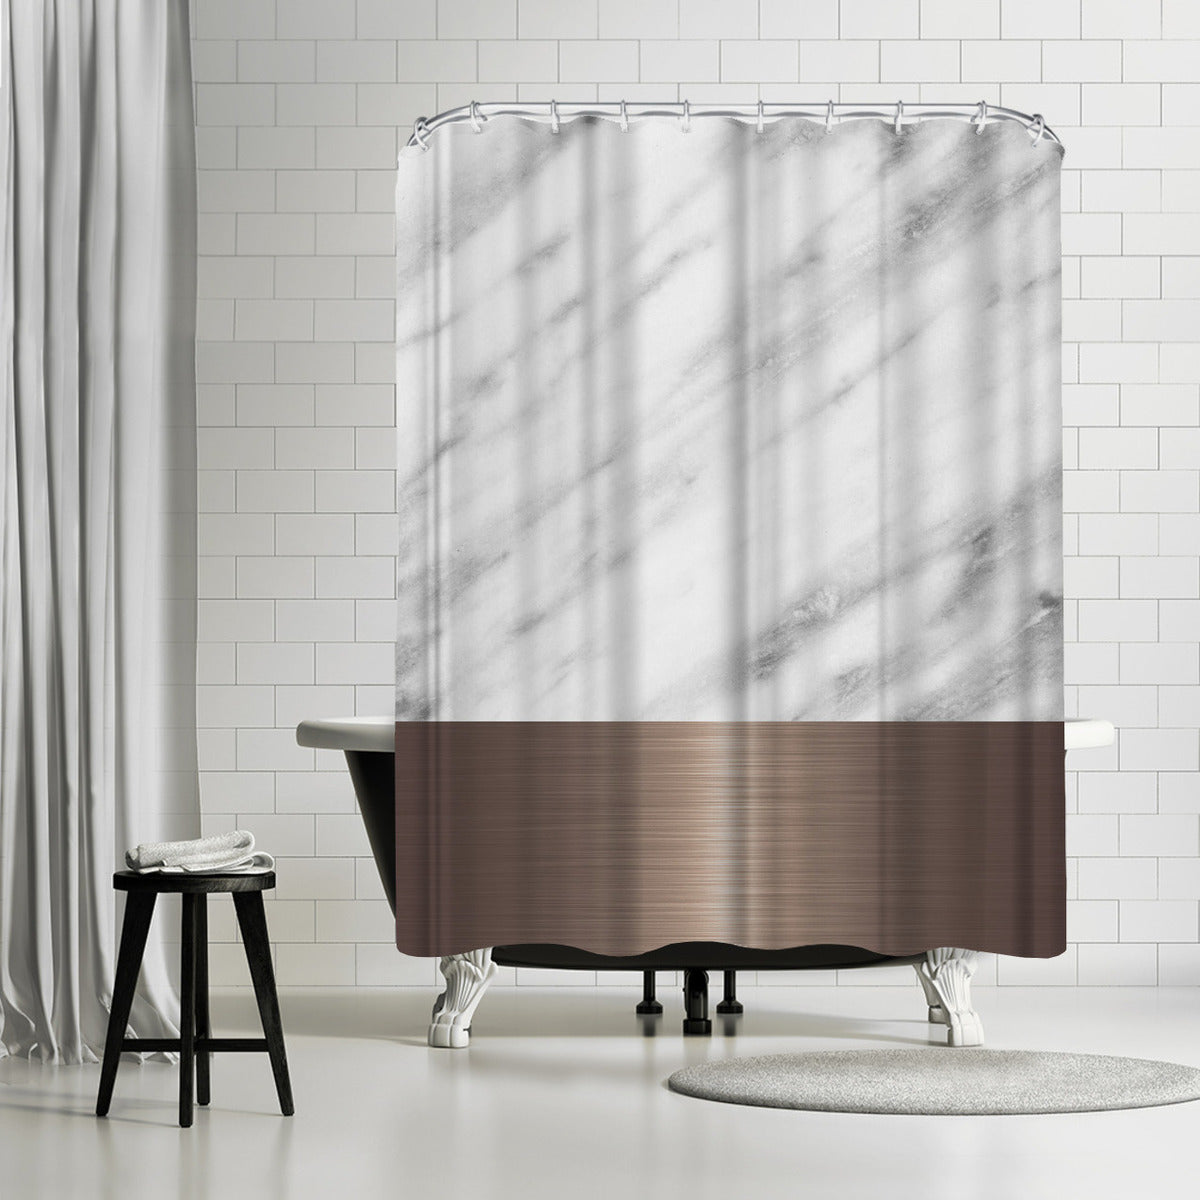 Copper On Marble by Emanuela Carratoni Shower Curtain - Shower Curtain - Americanflat